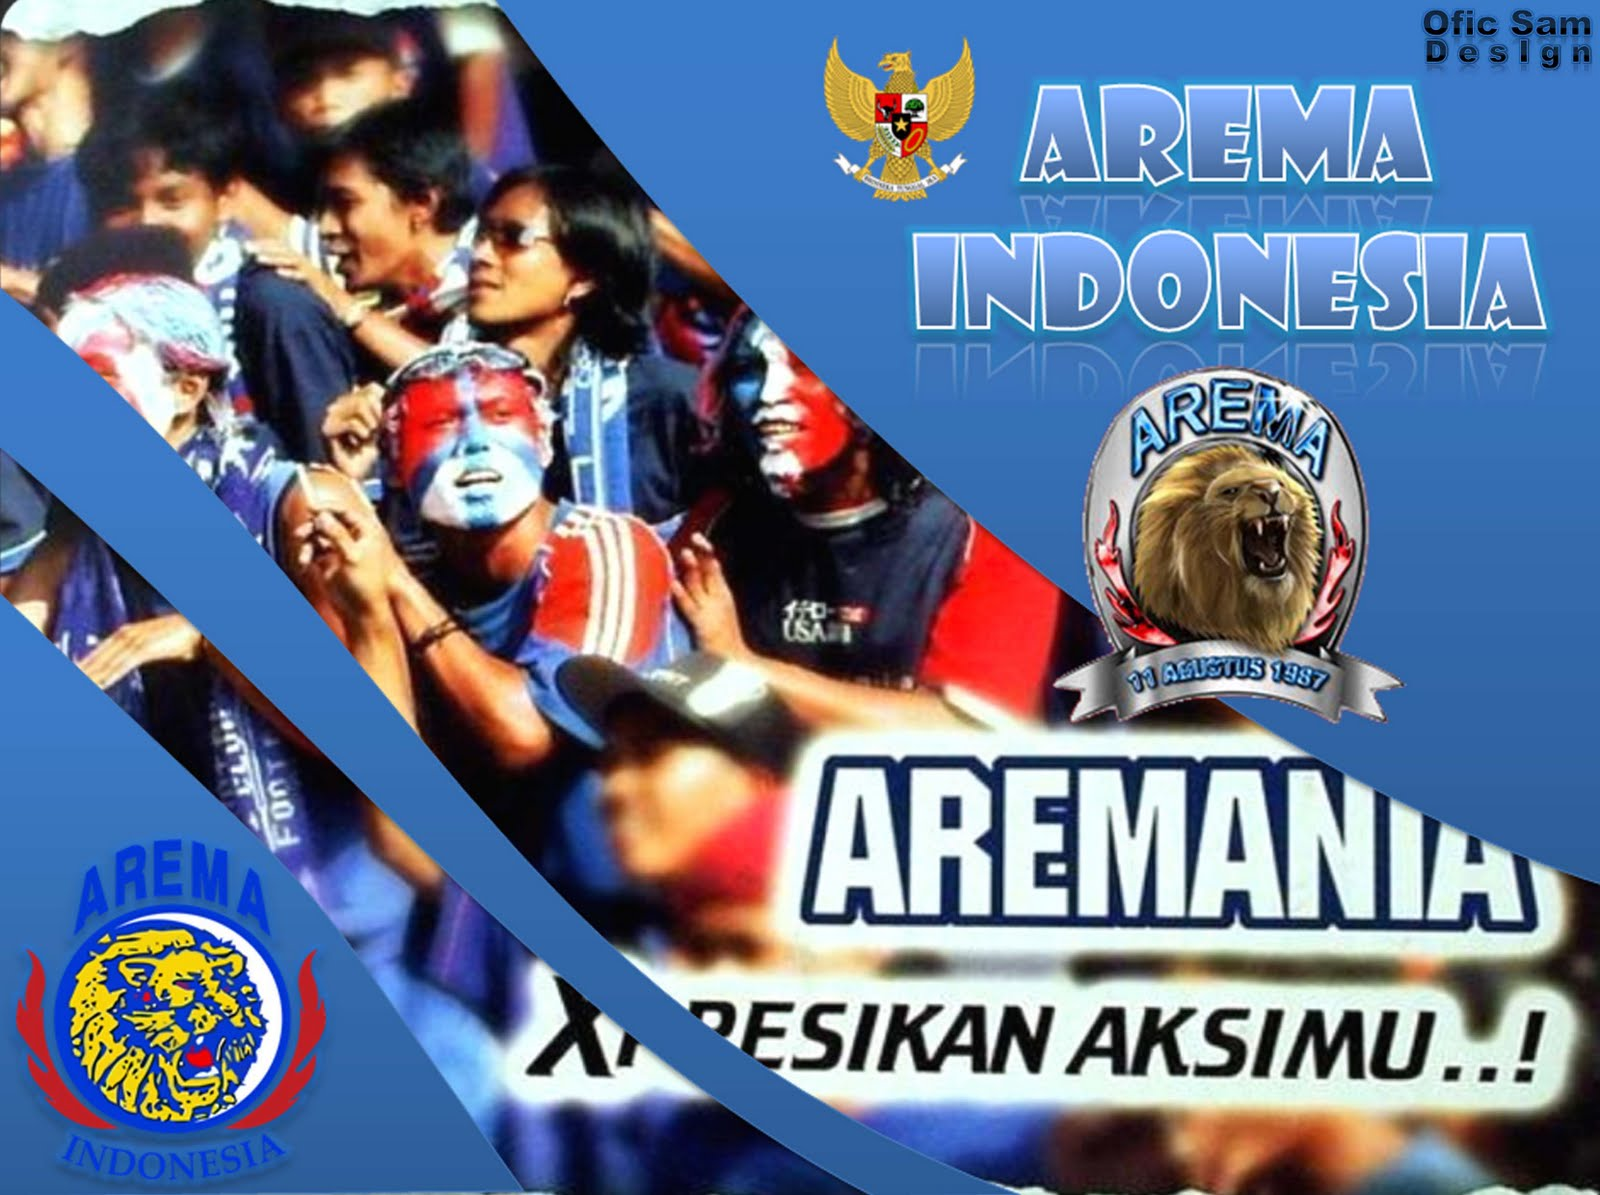 wallpaper AREMA INDONESIA 2011 edisi MEI (Ofic Sam Design)